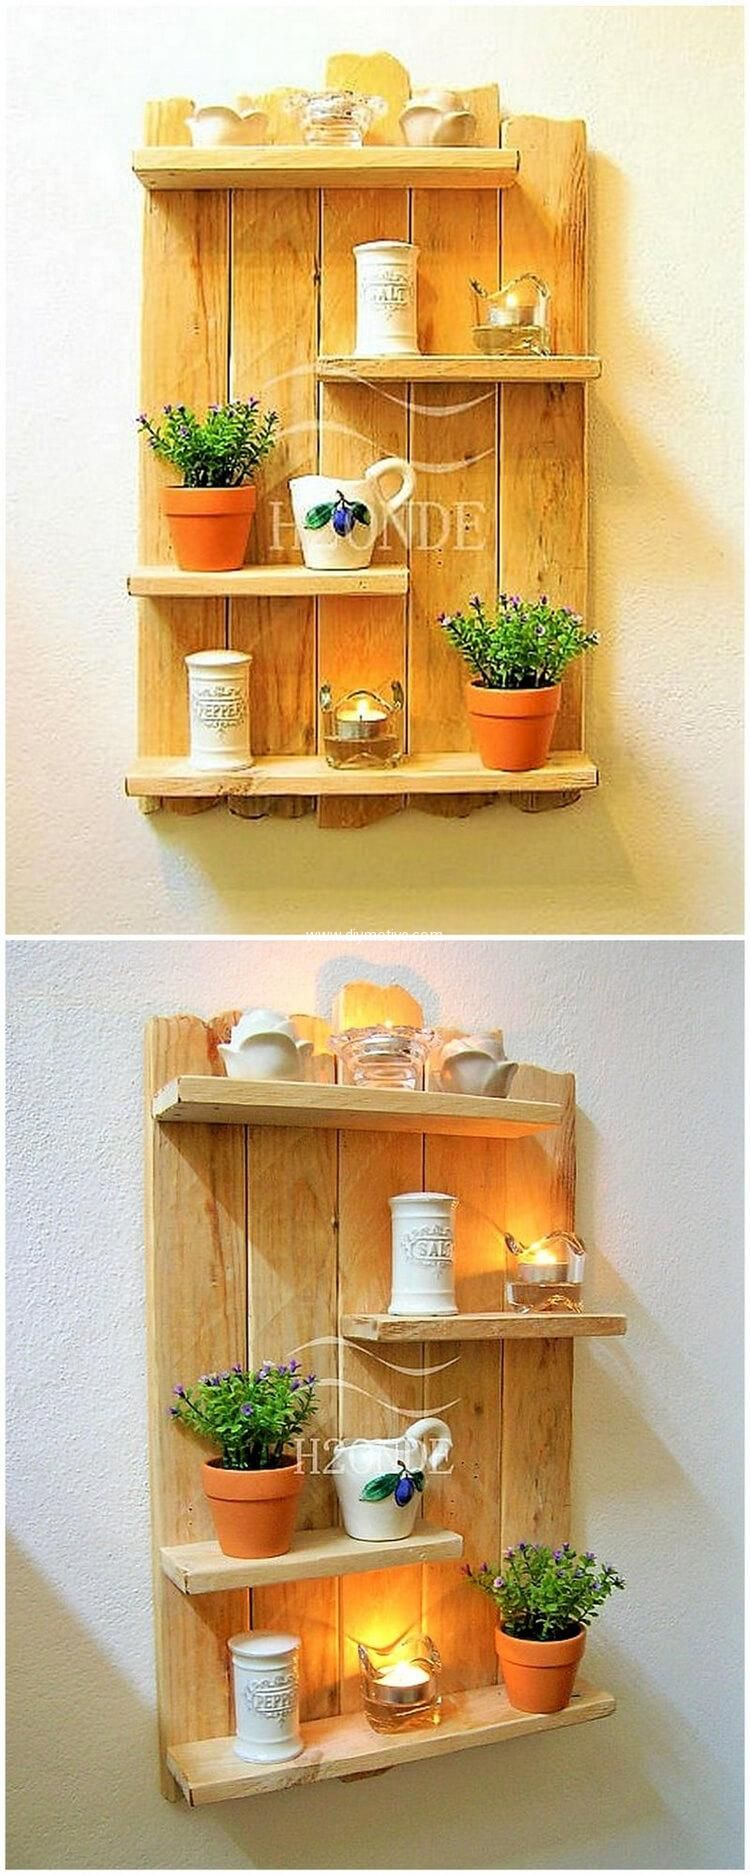 Creative Shelving Ideas With Reclaimed Wooden Pallets   Wood shelf ...